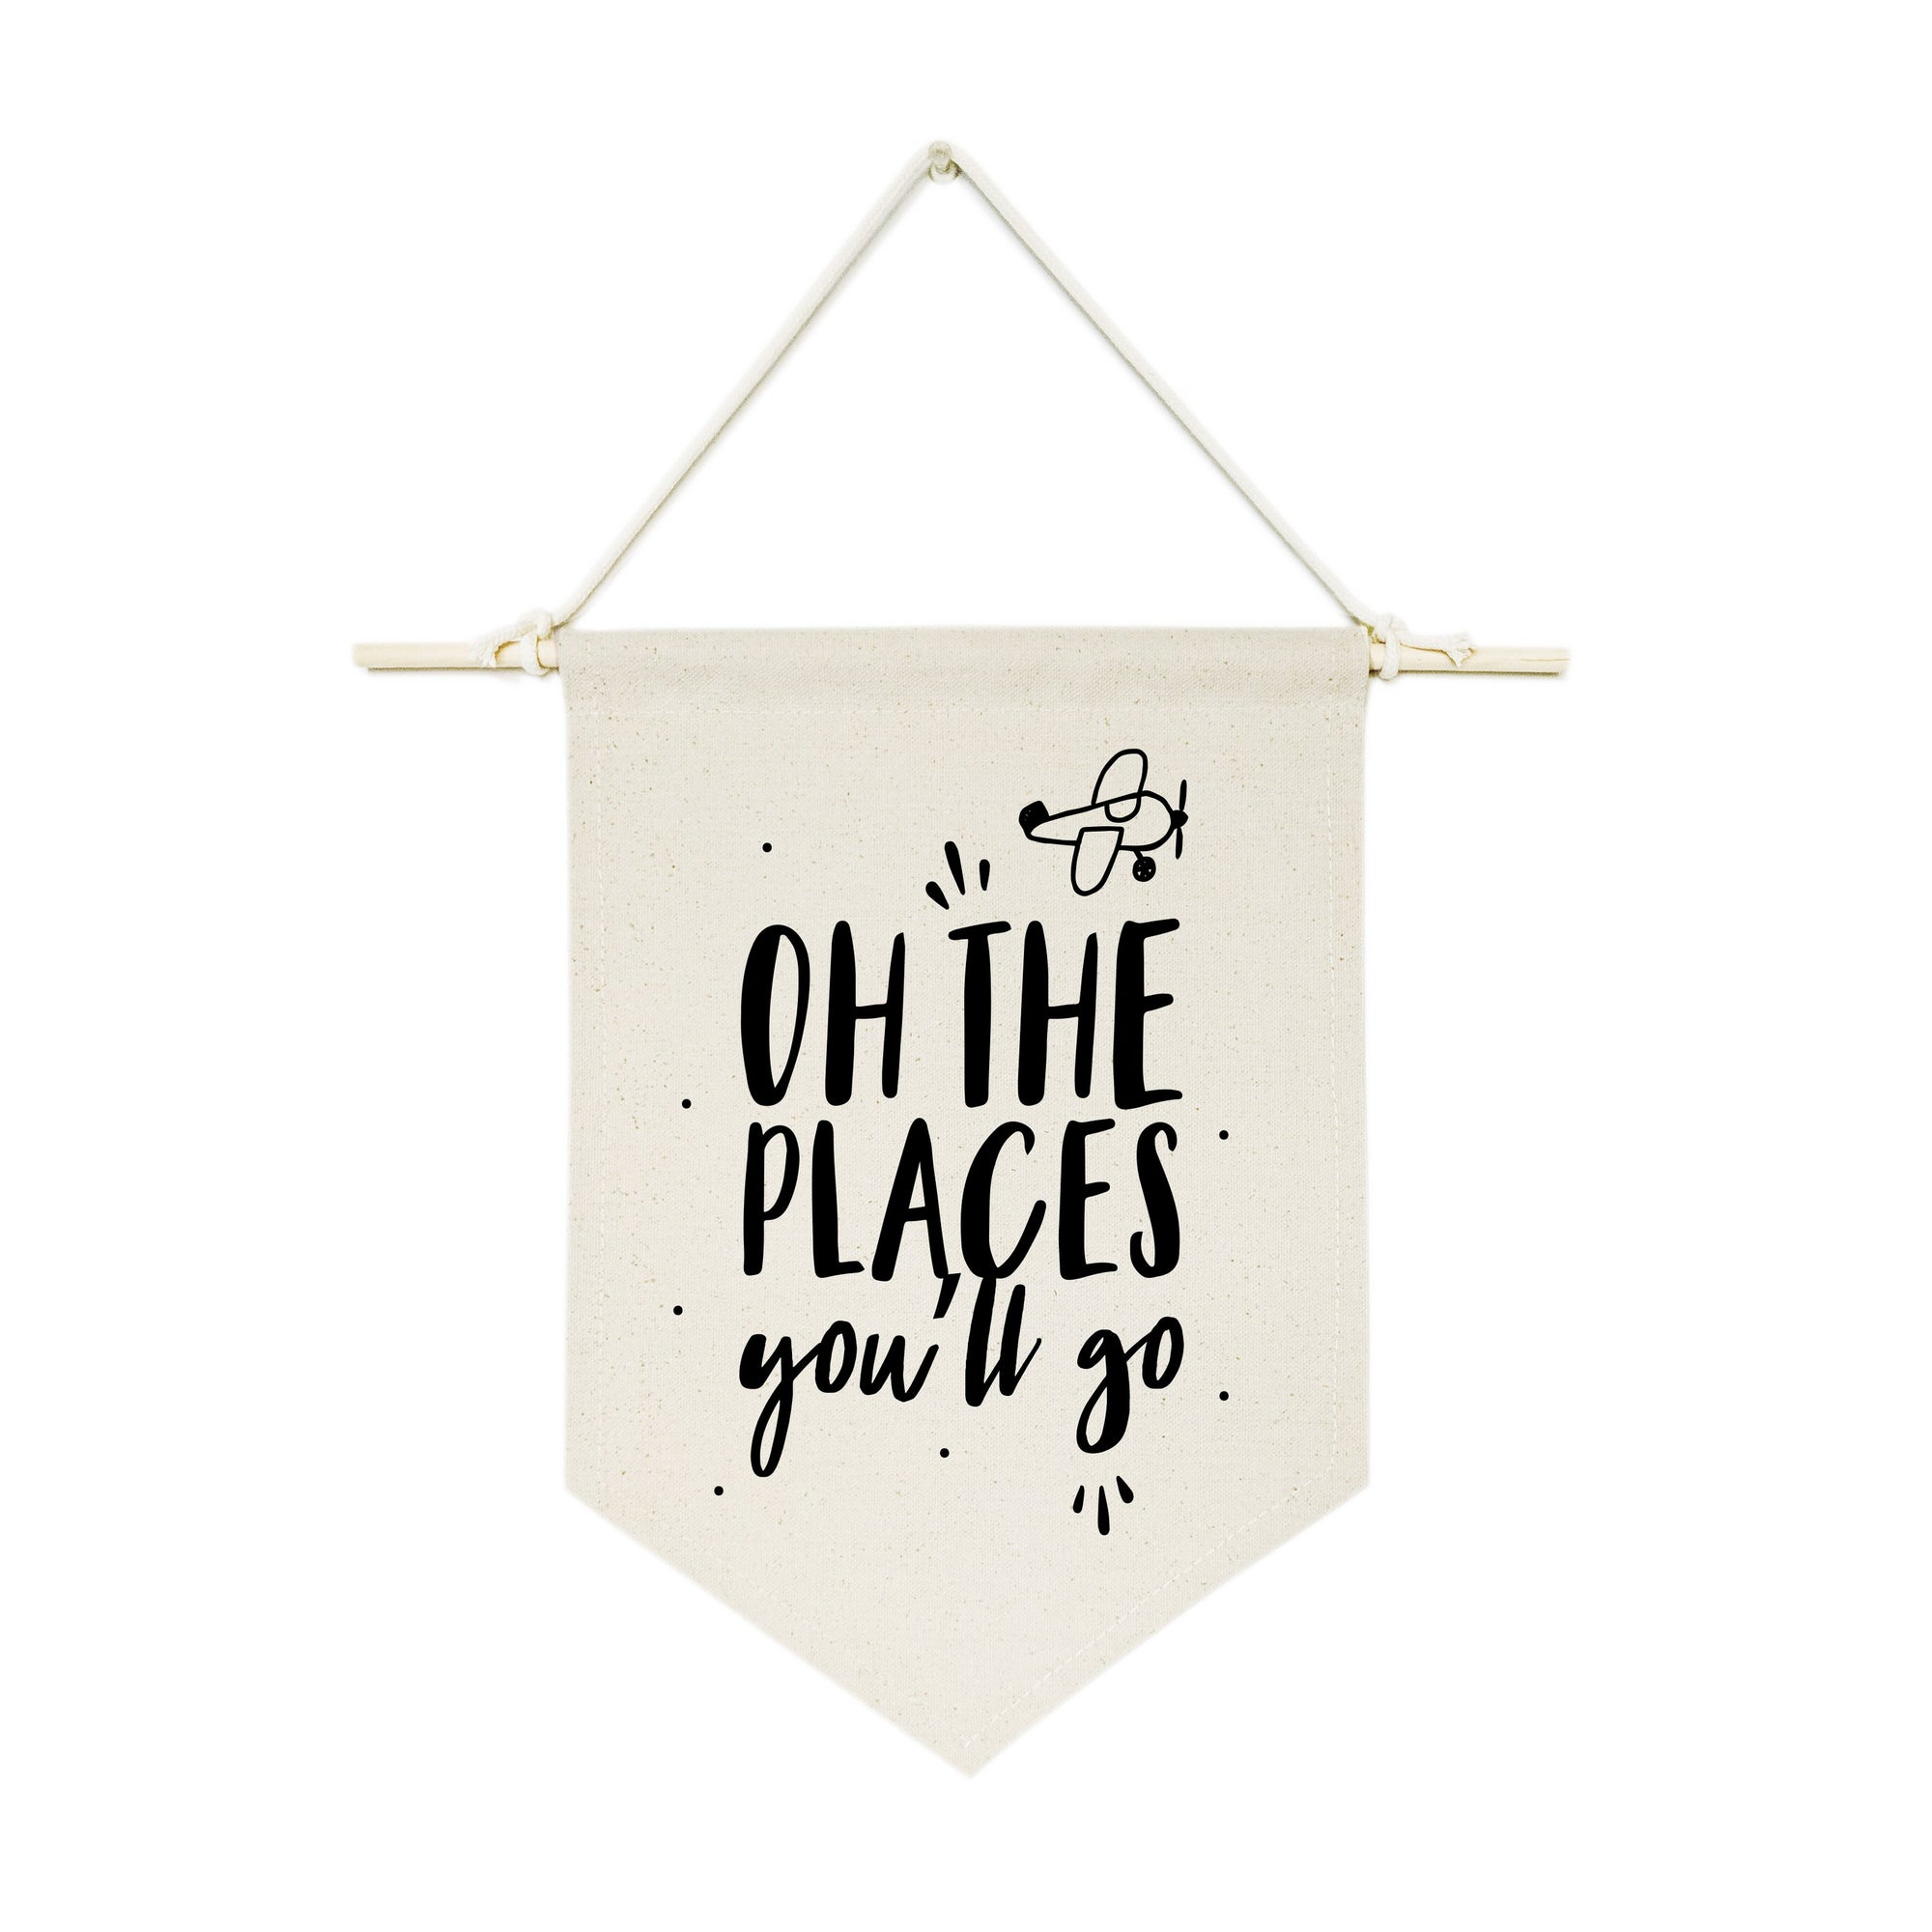 Oh the Places You'll Go Hanging Wall Banner